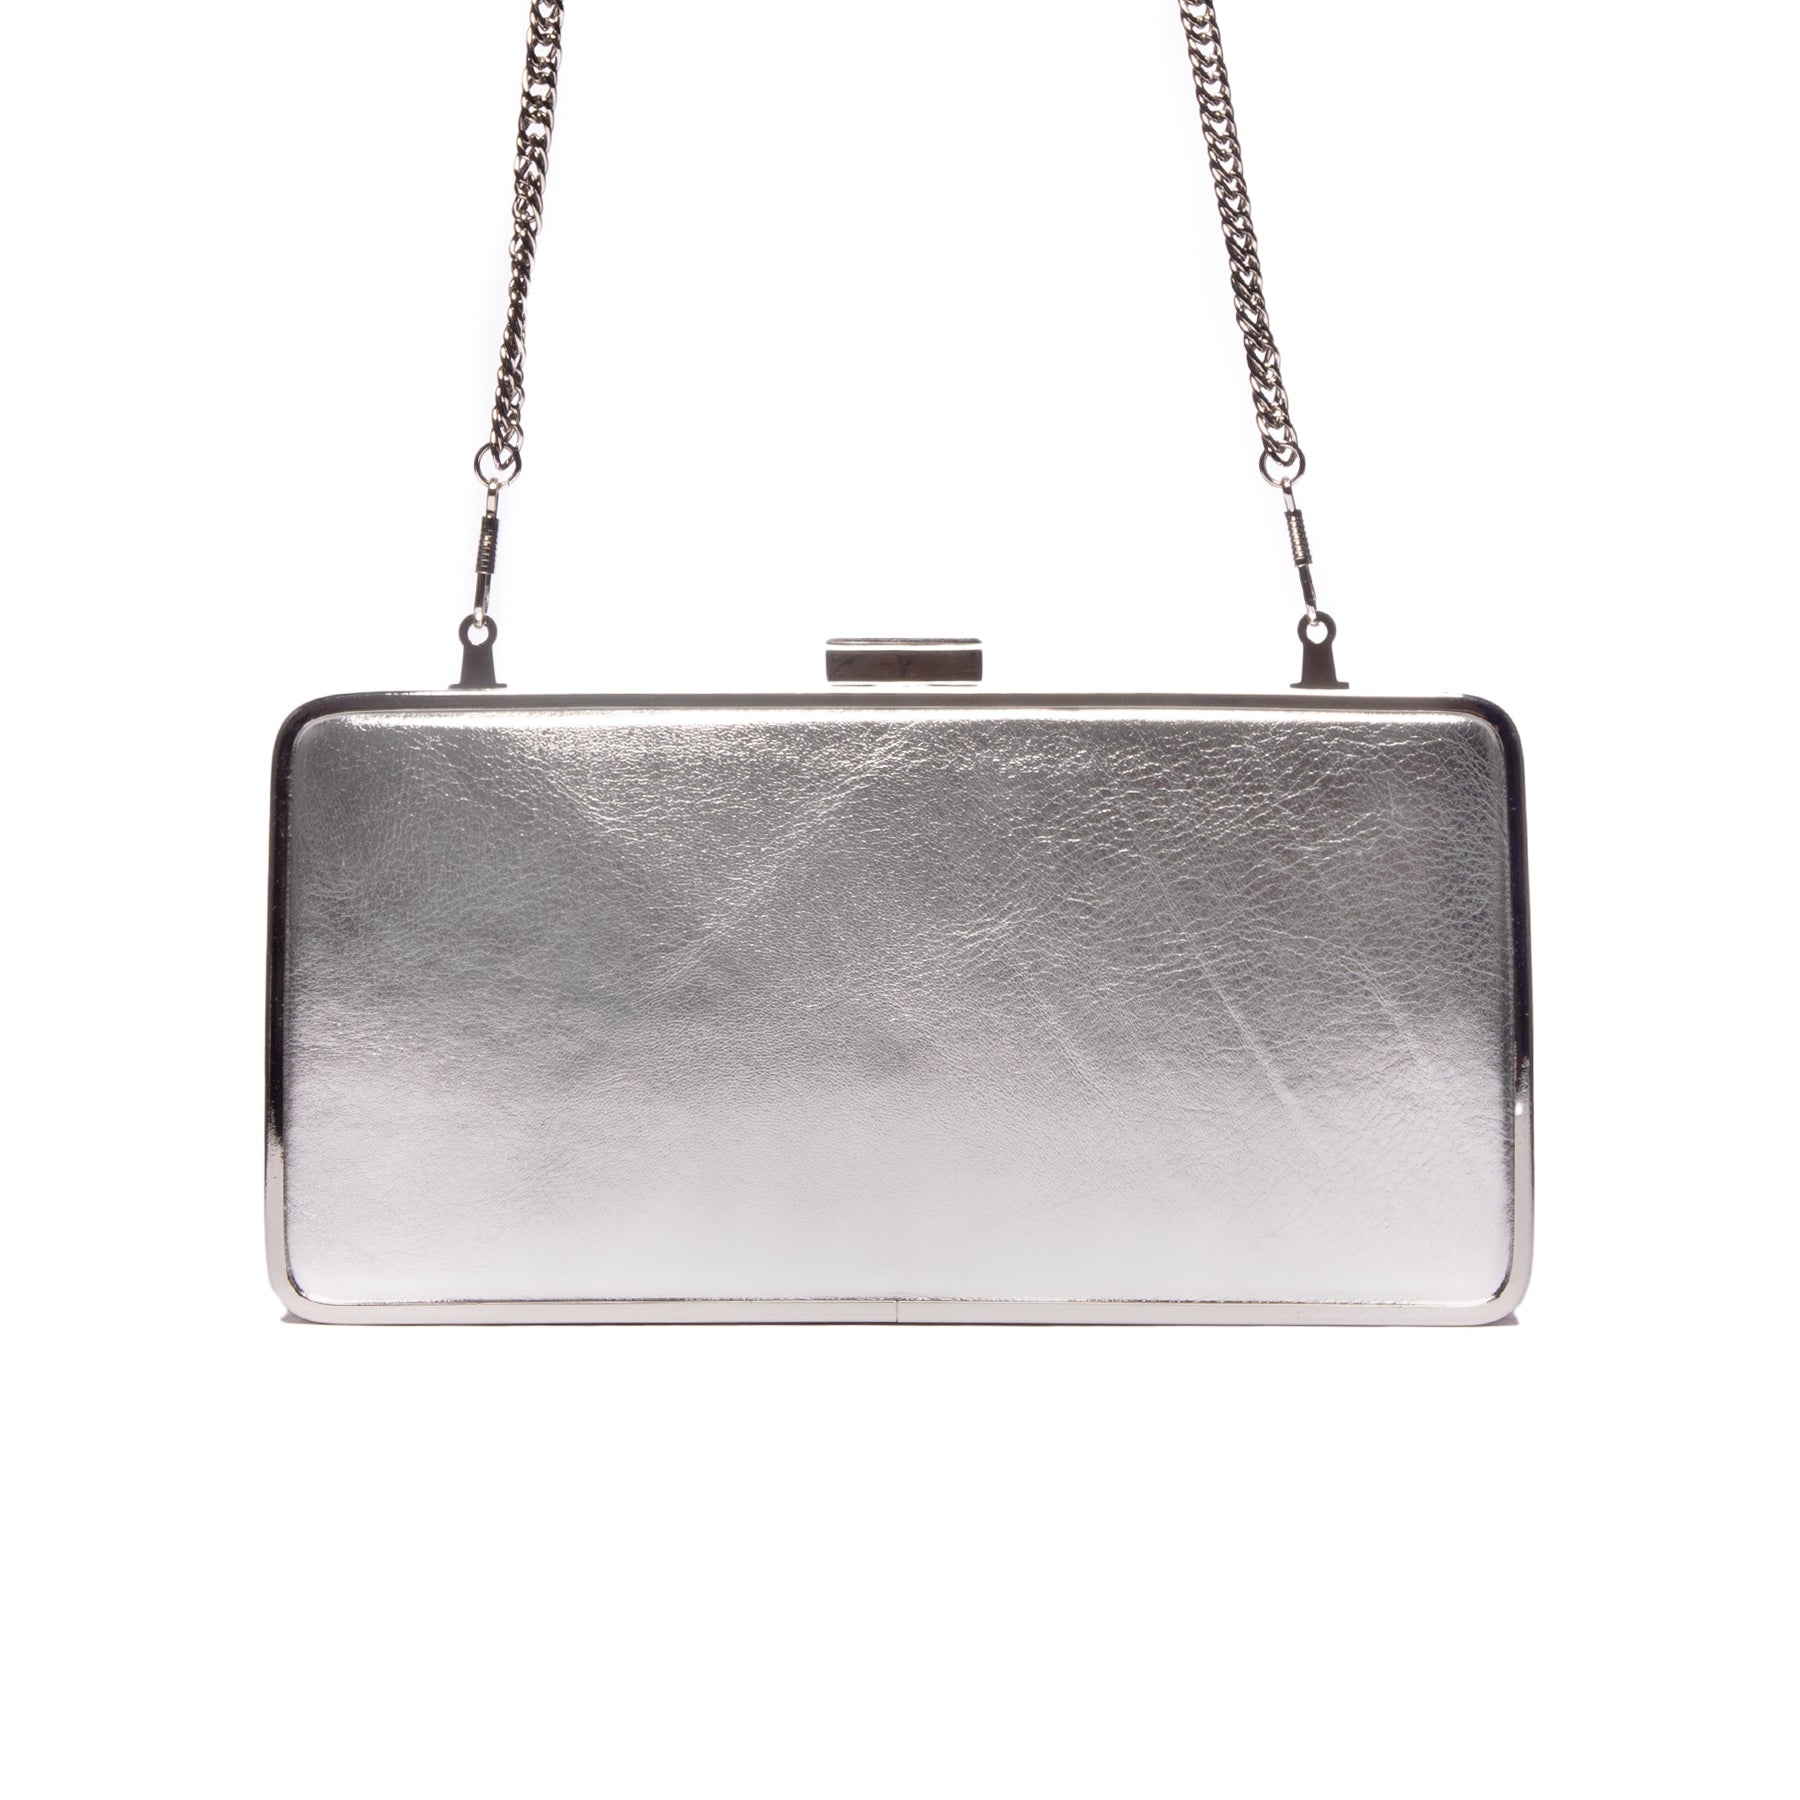 Theodore Silver Metallic Leather Clutch